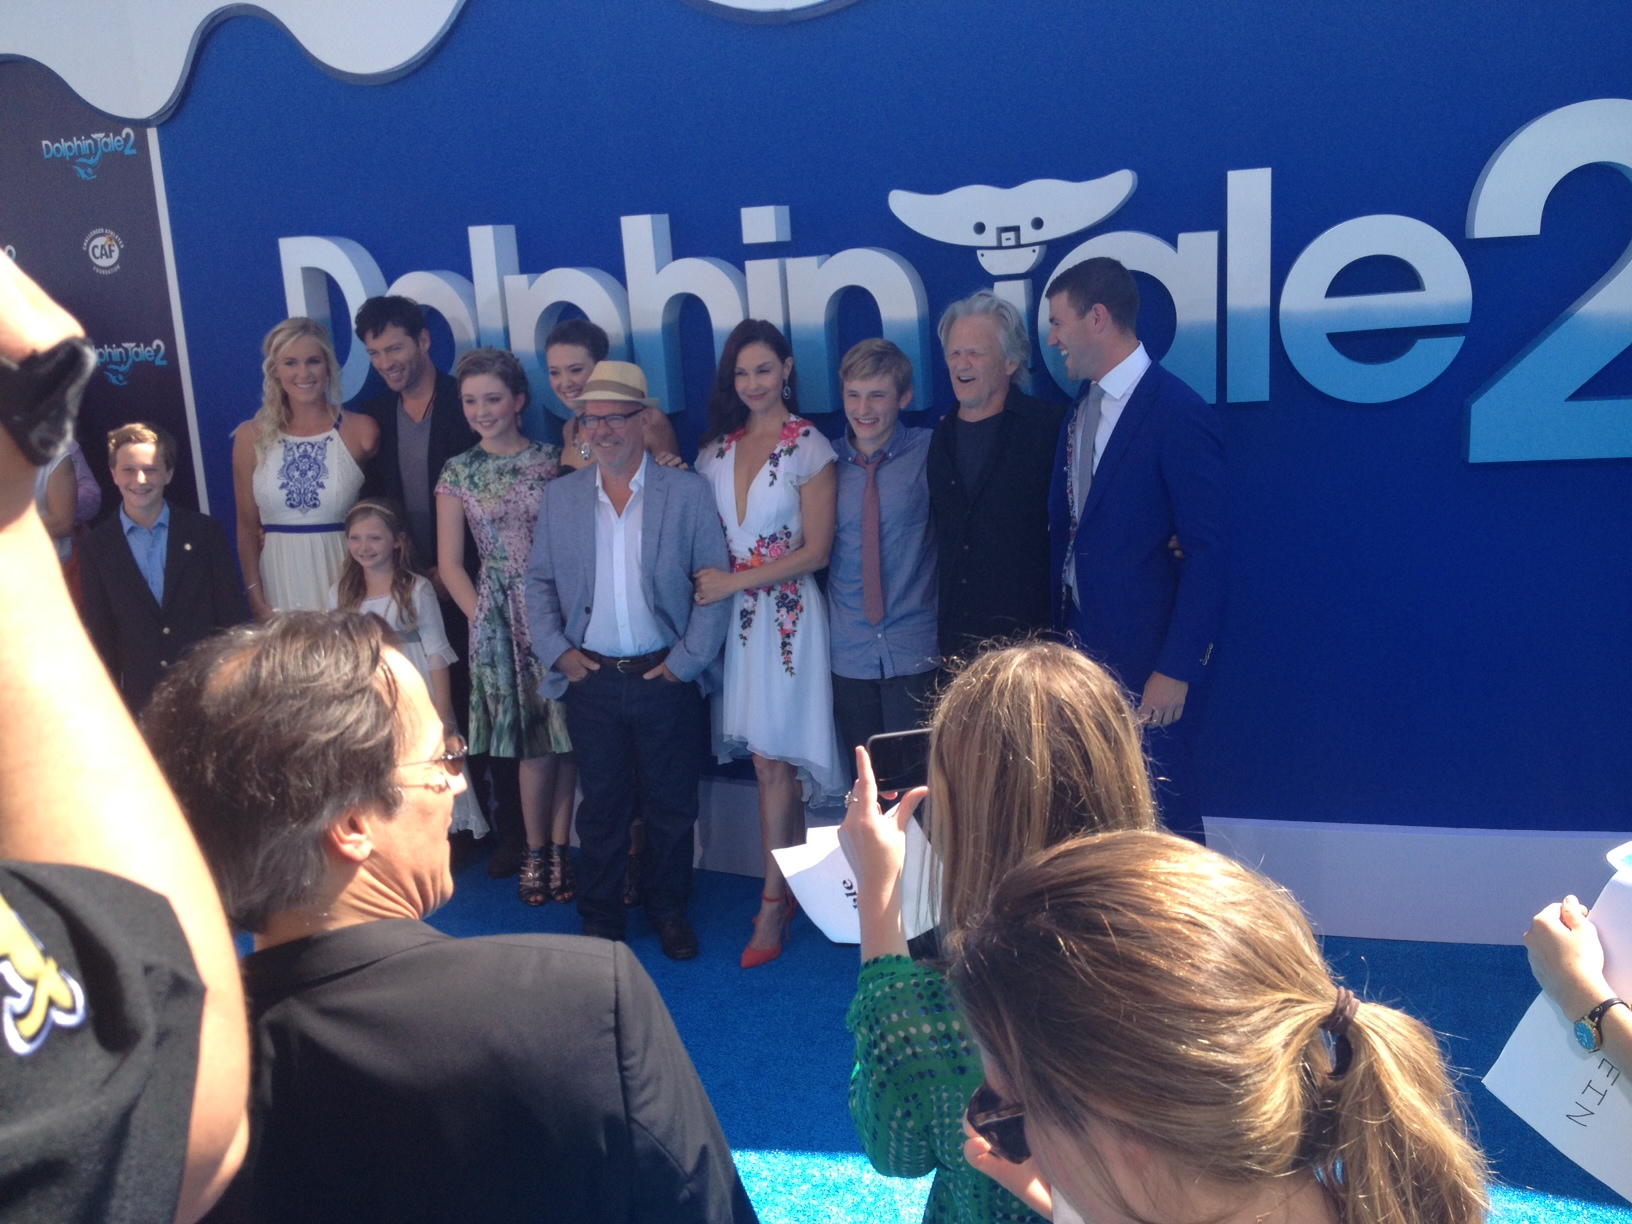 dolphin tale 2 cast